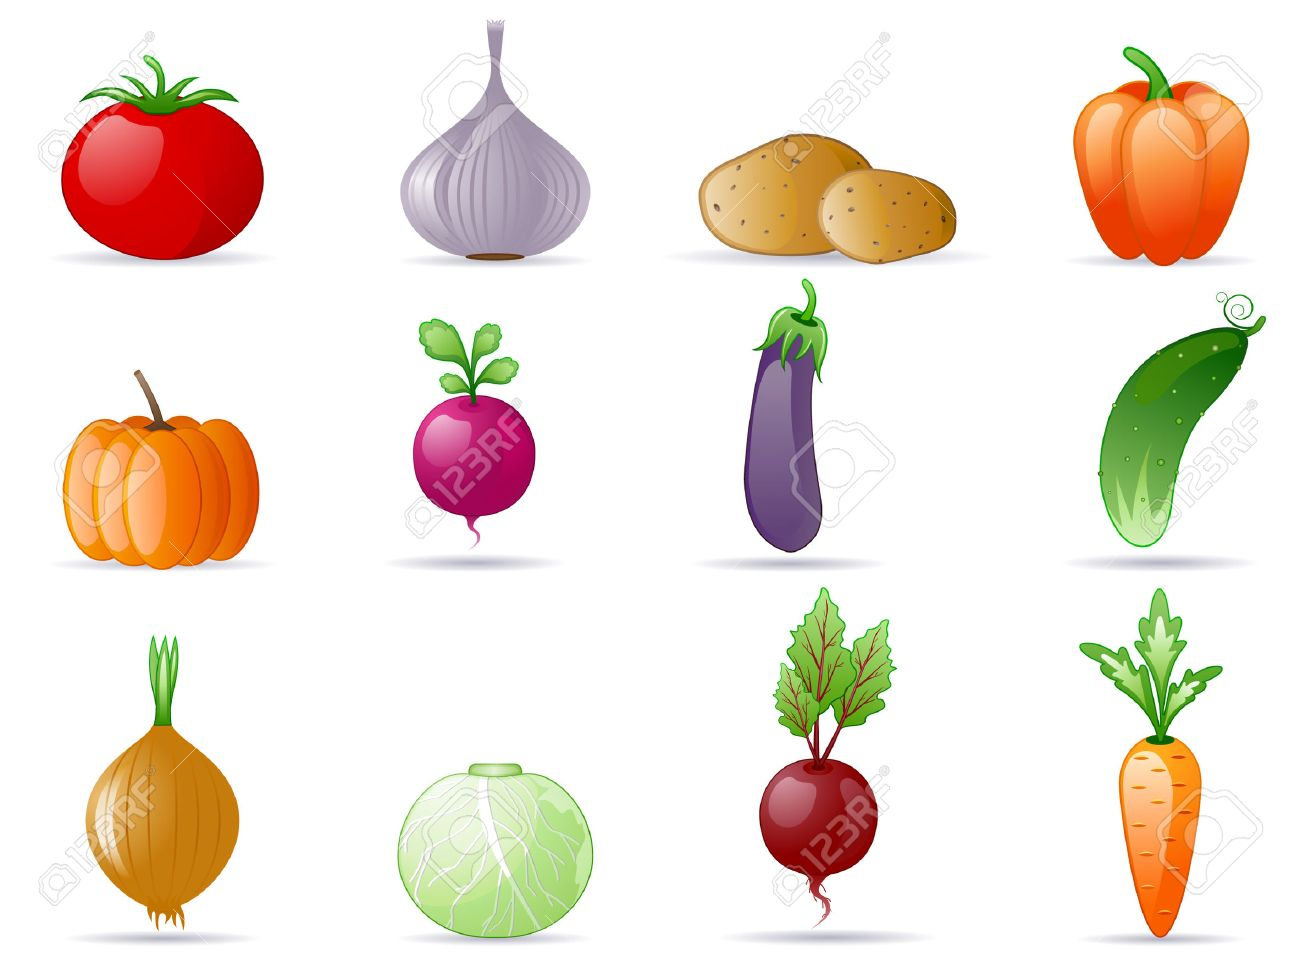 Vegetables icon set Stock Vector - 6136344